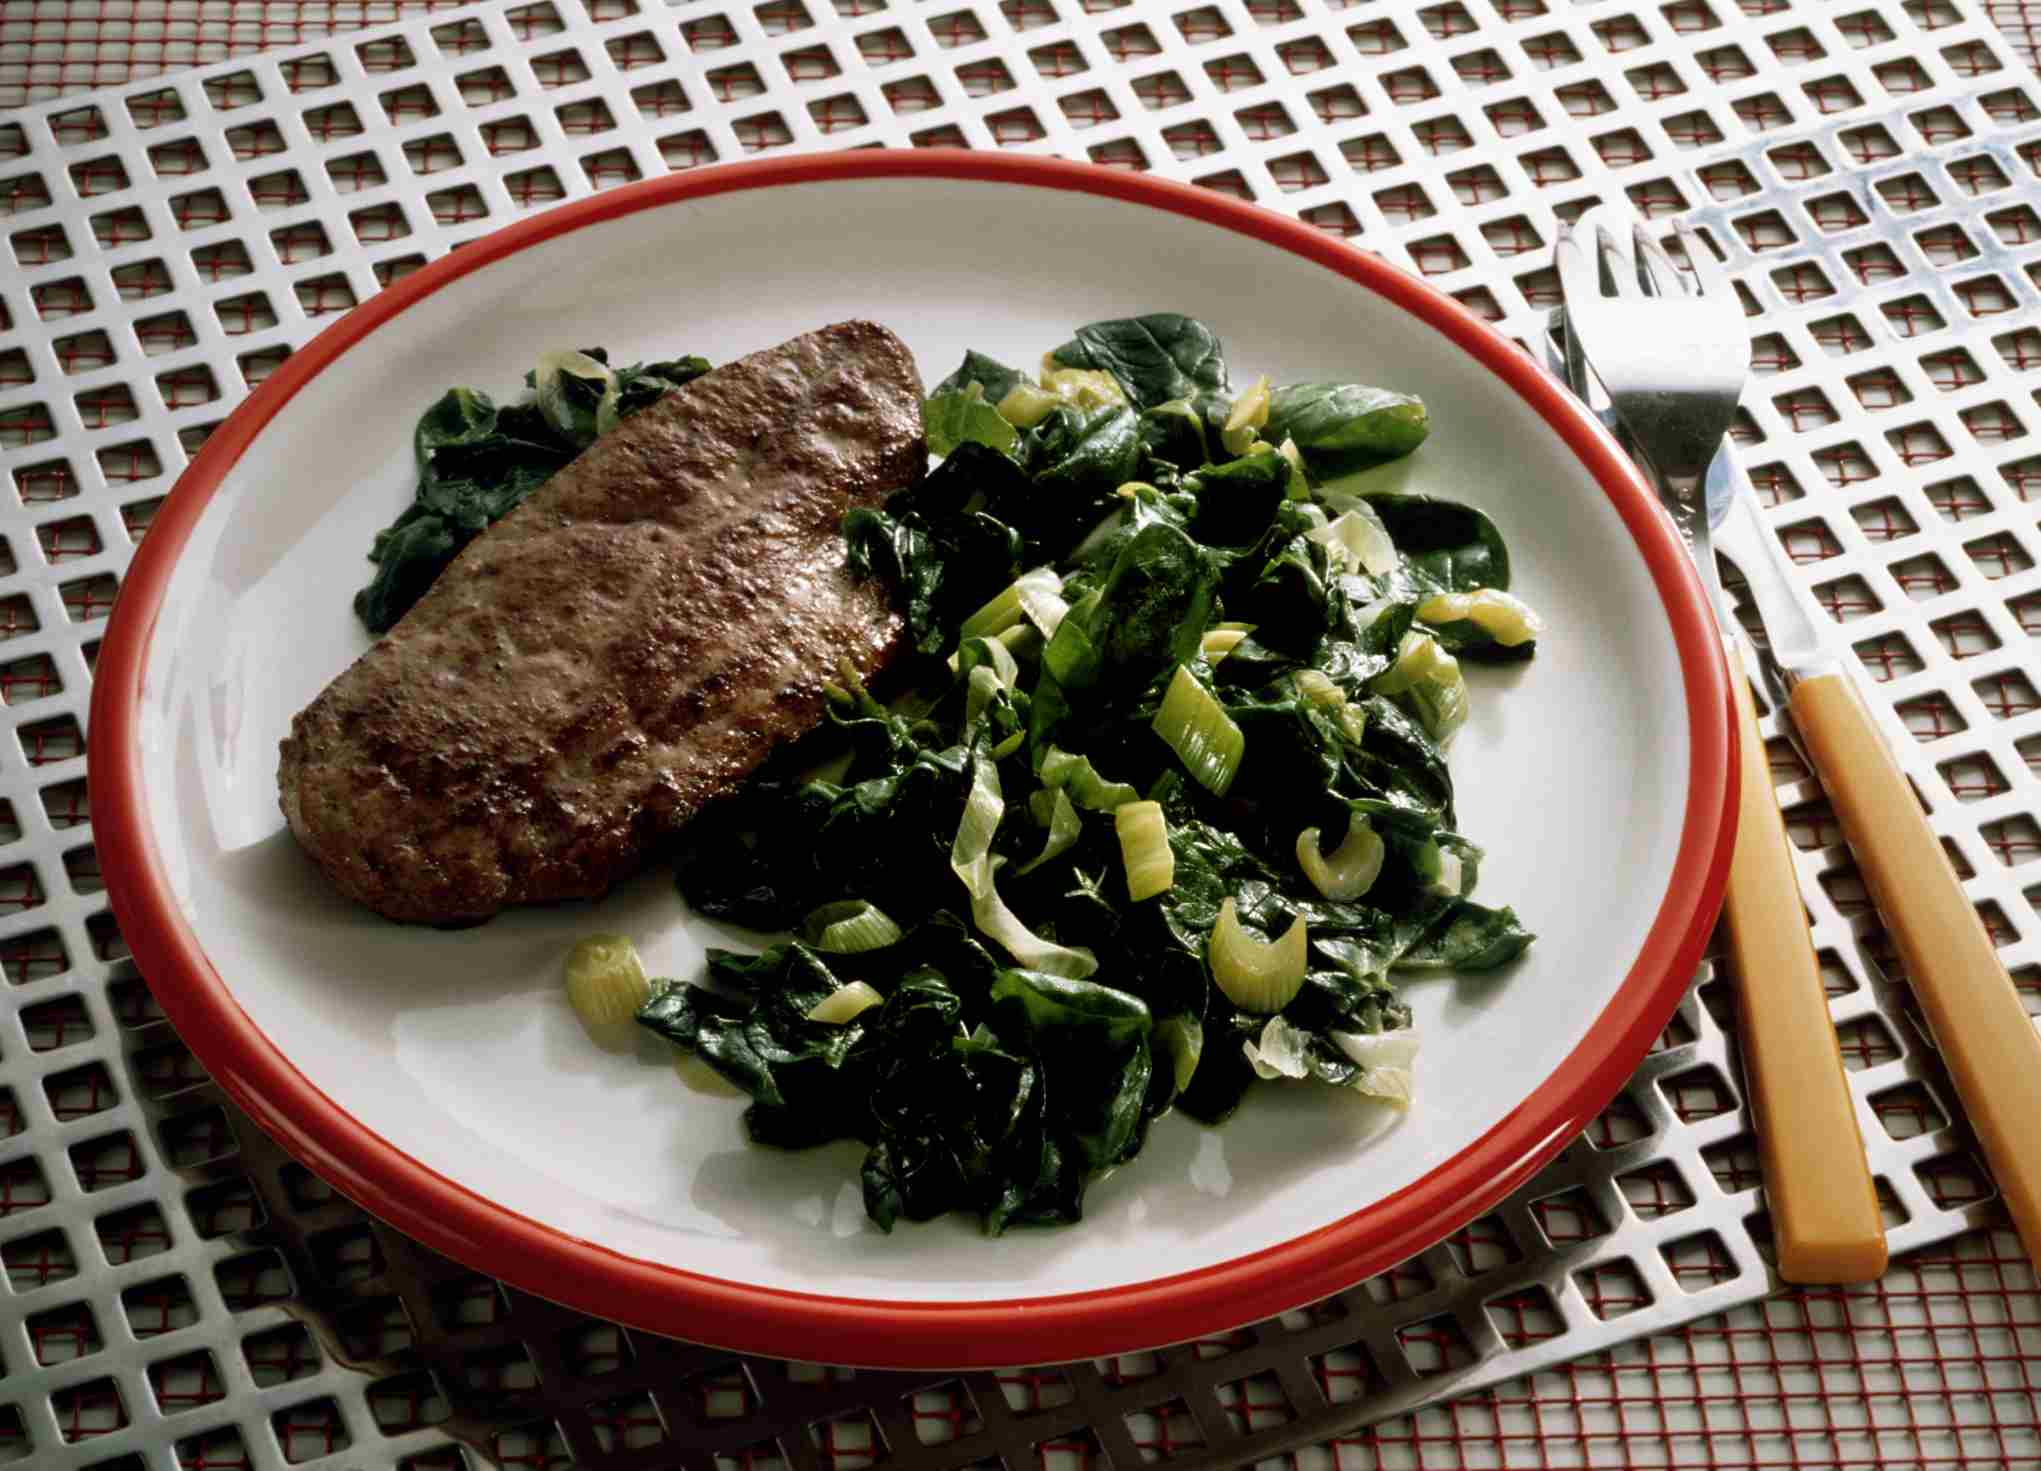 Iron rich foods that can prevent iron deficiency